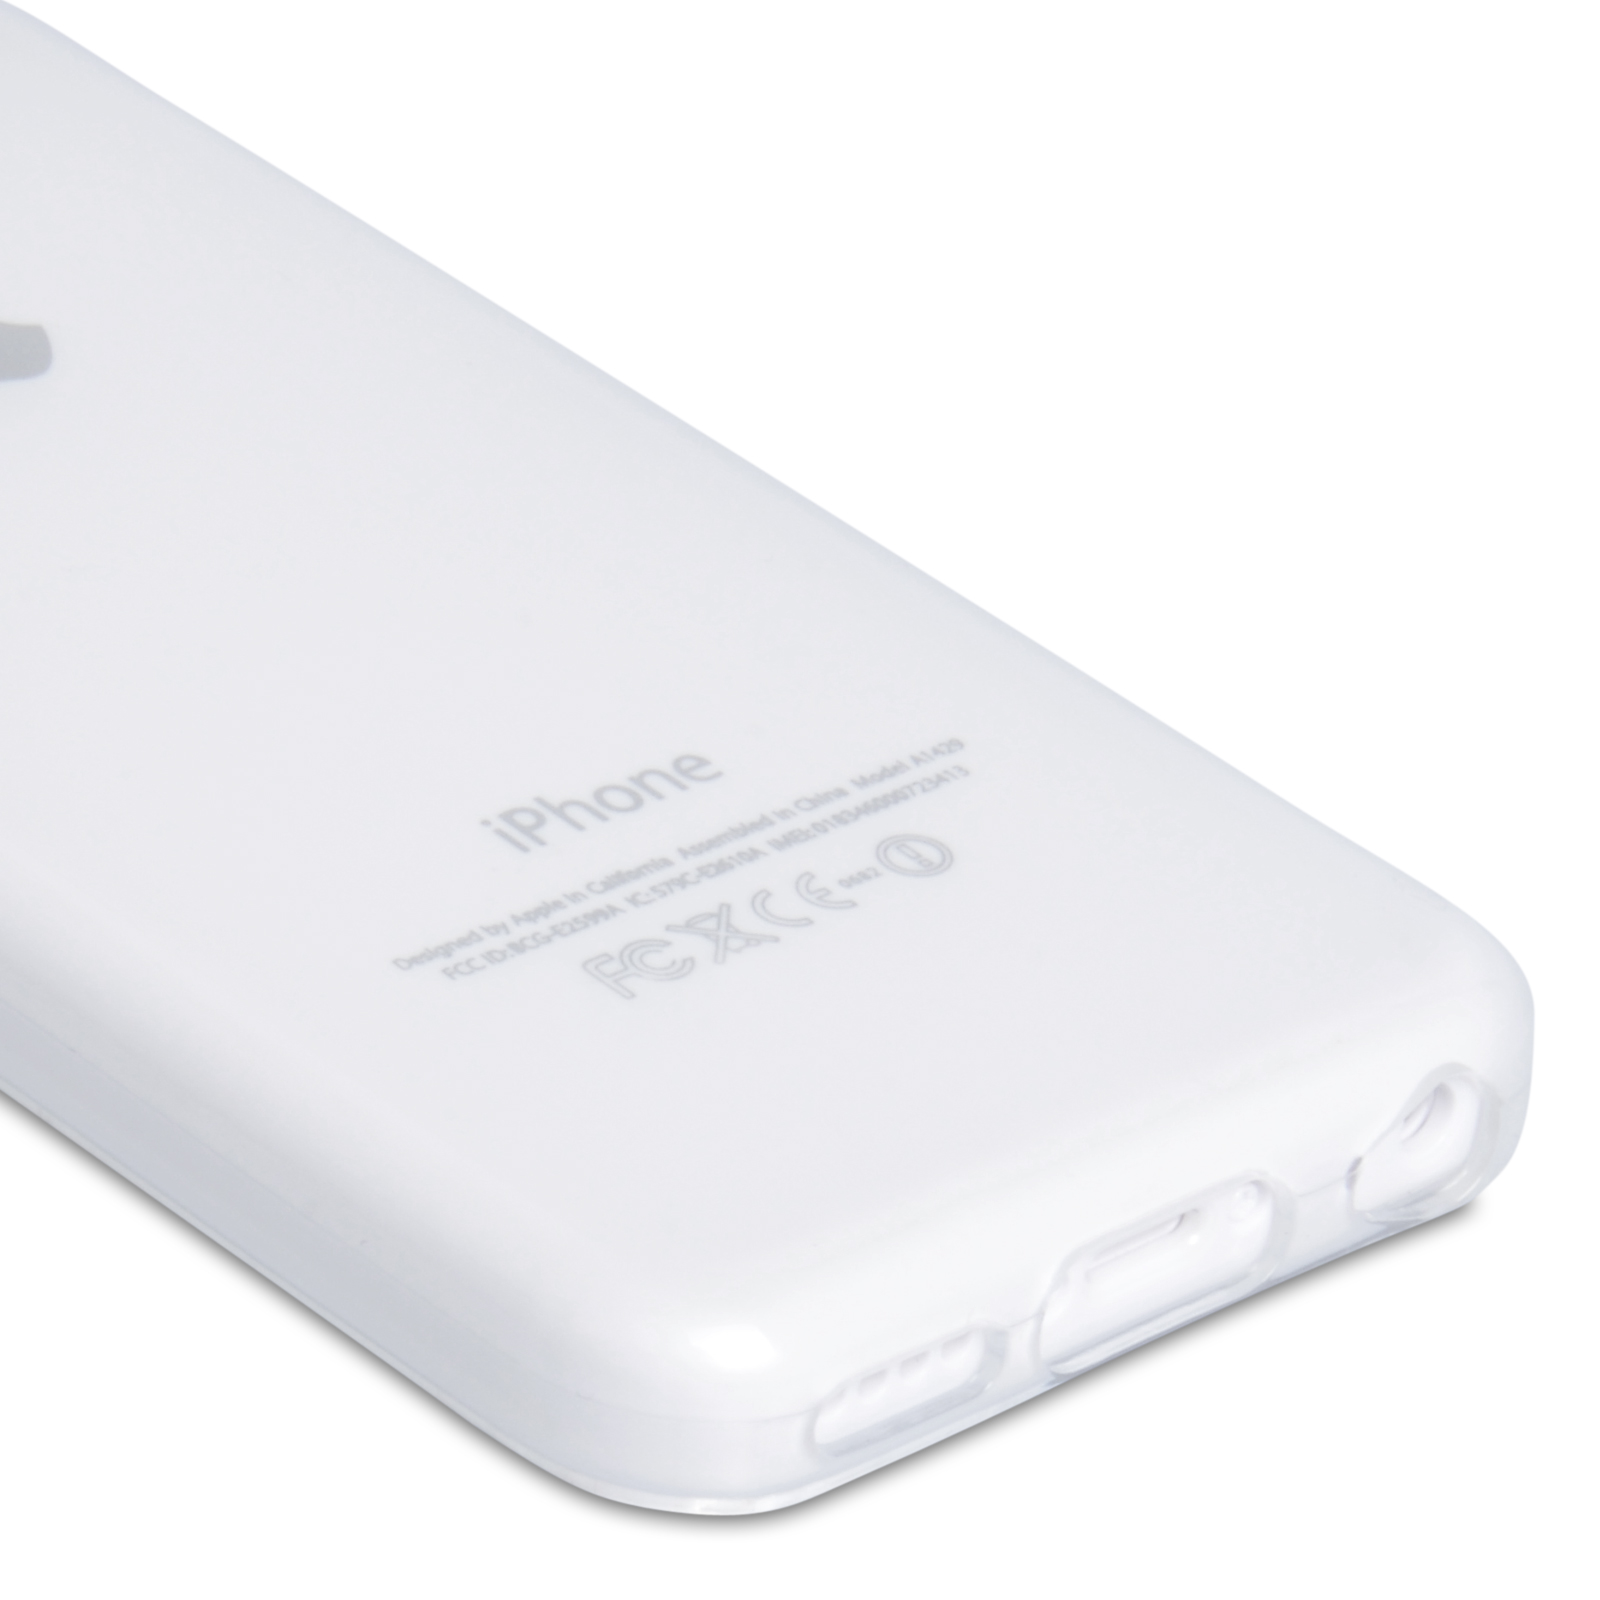 YouSave Accessories iPhone 5C Gel Case - Clear